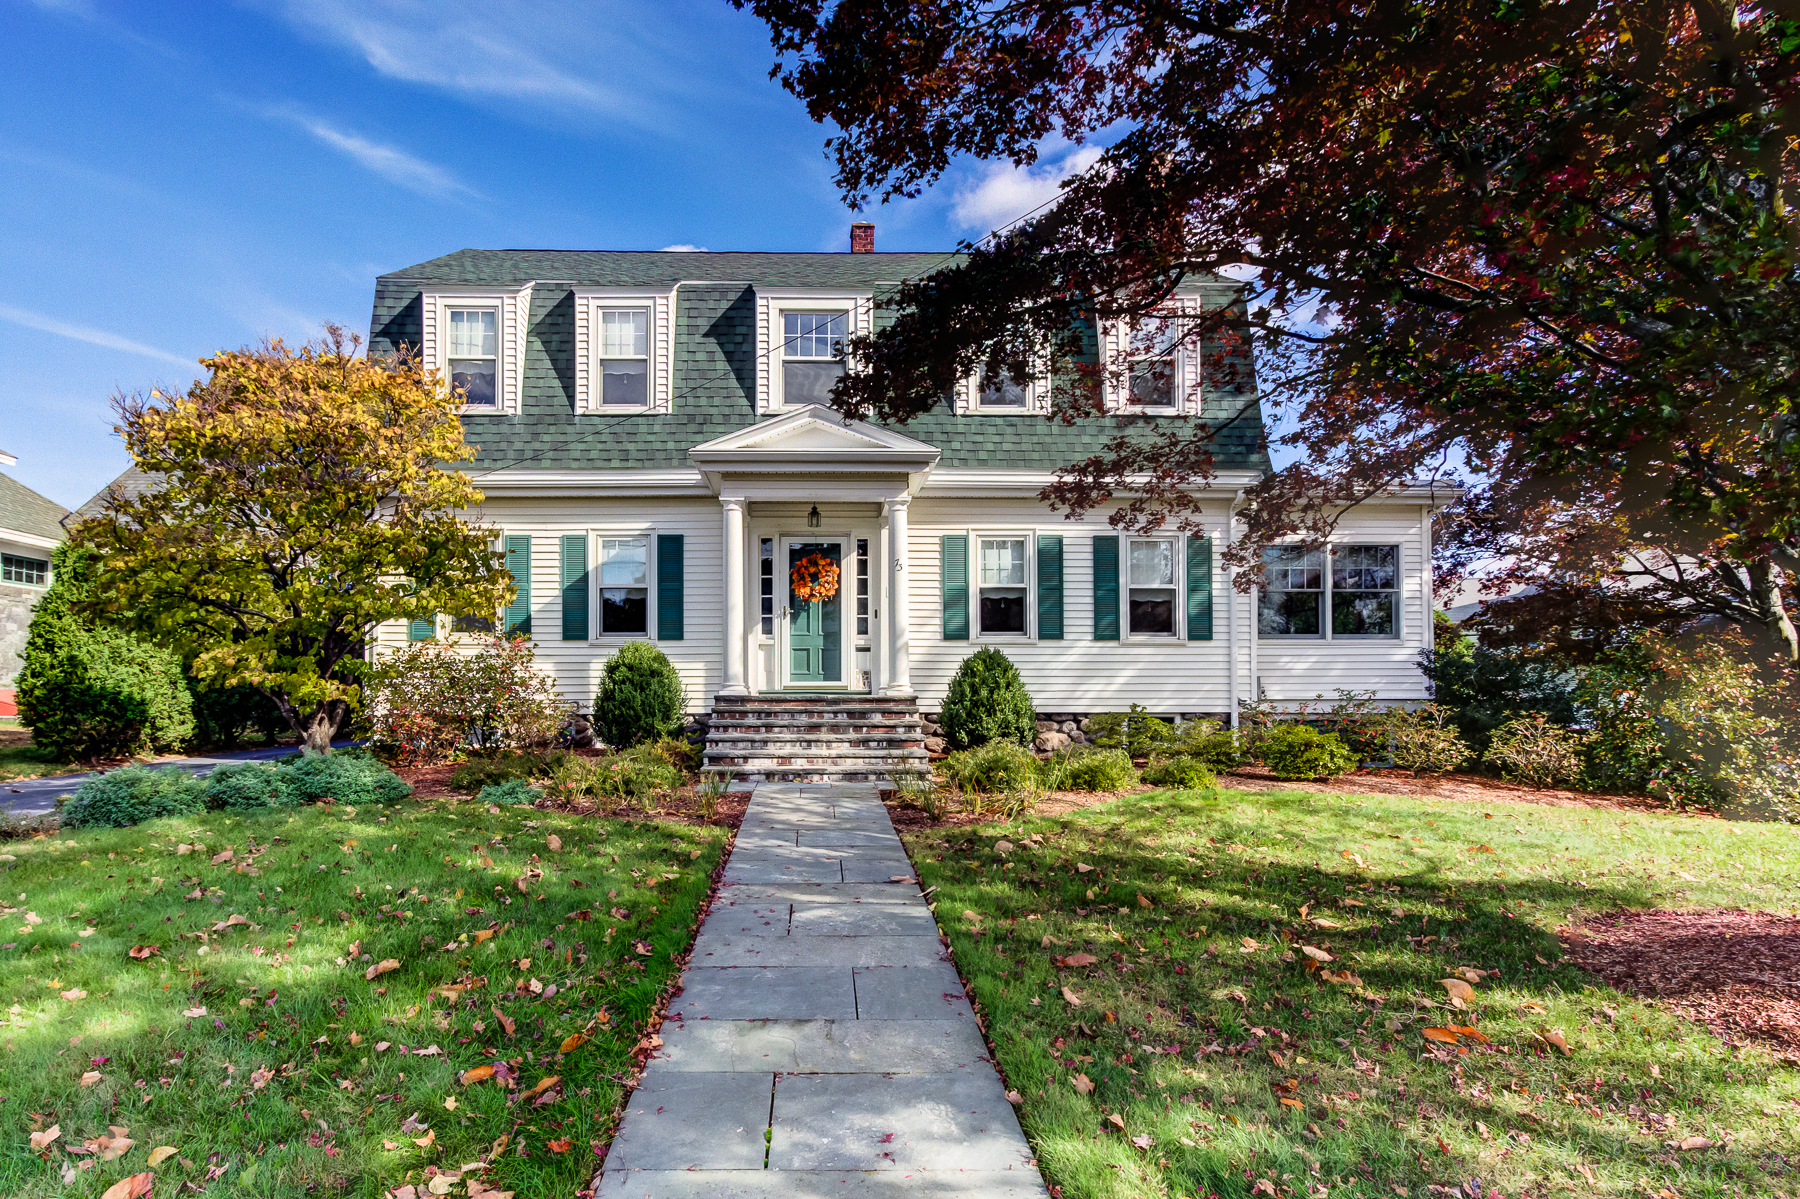 Casa Unifamiliar por un Venta en Charming Gambrel Home 73 Congress Street Milford, Massachusetts 01757 Estados Unidos